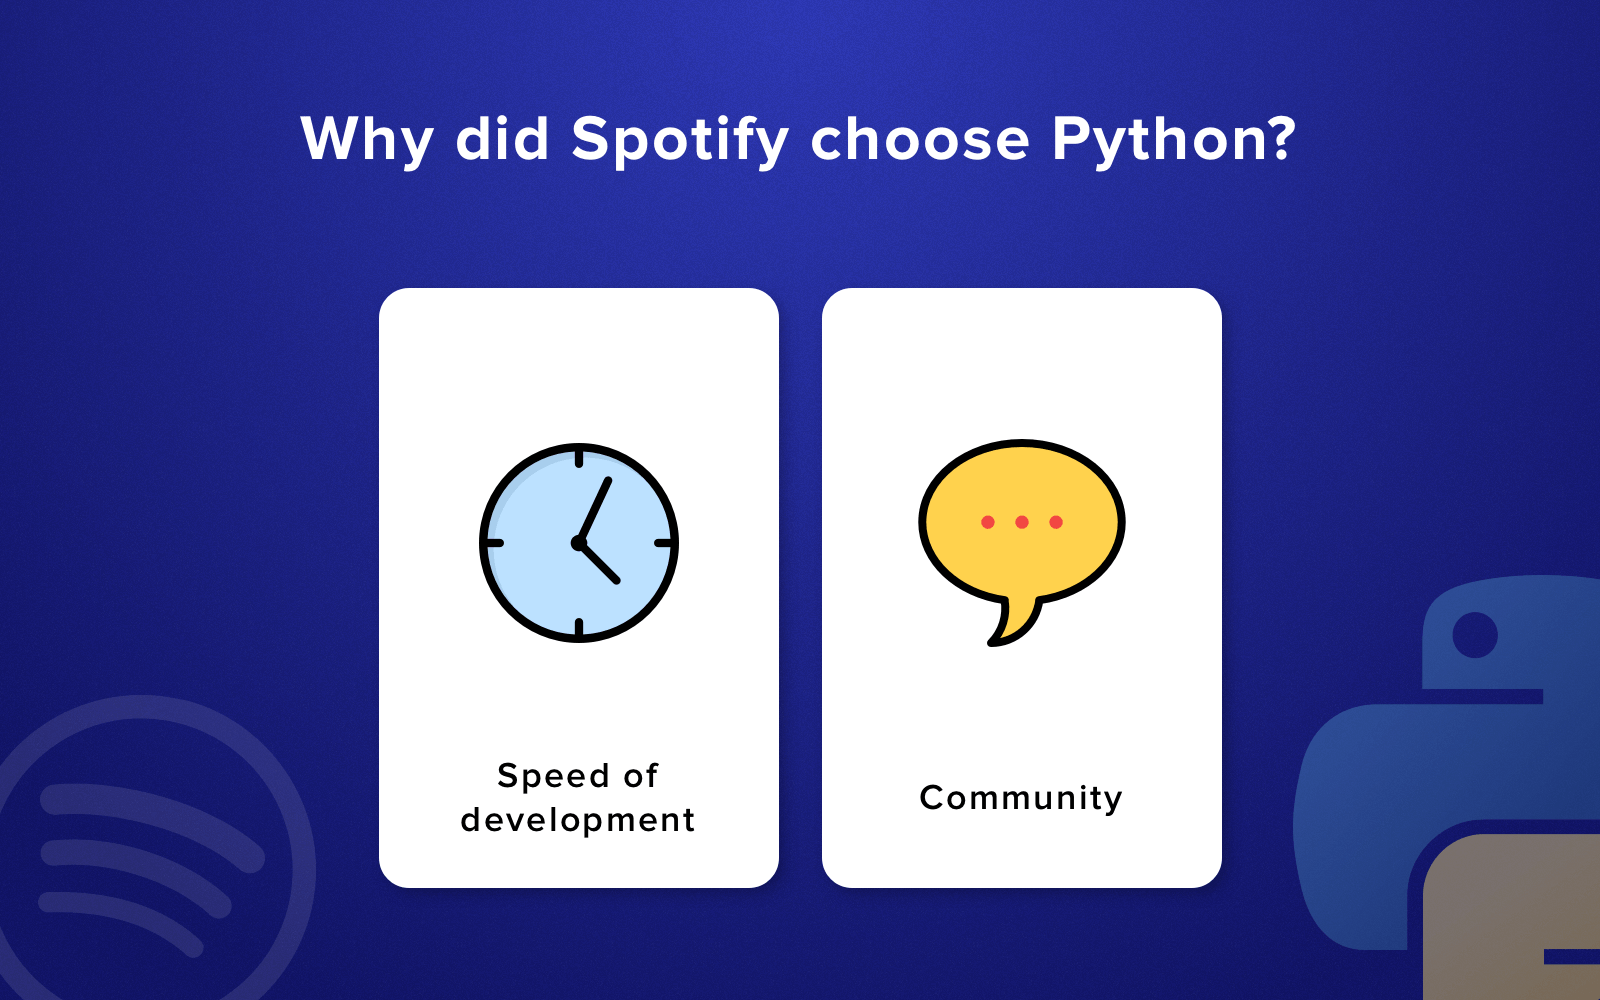 Advantages of Python: Why did Spotify choose it